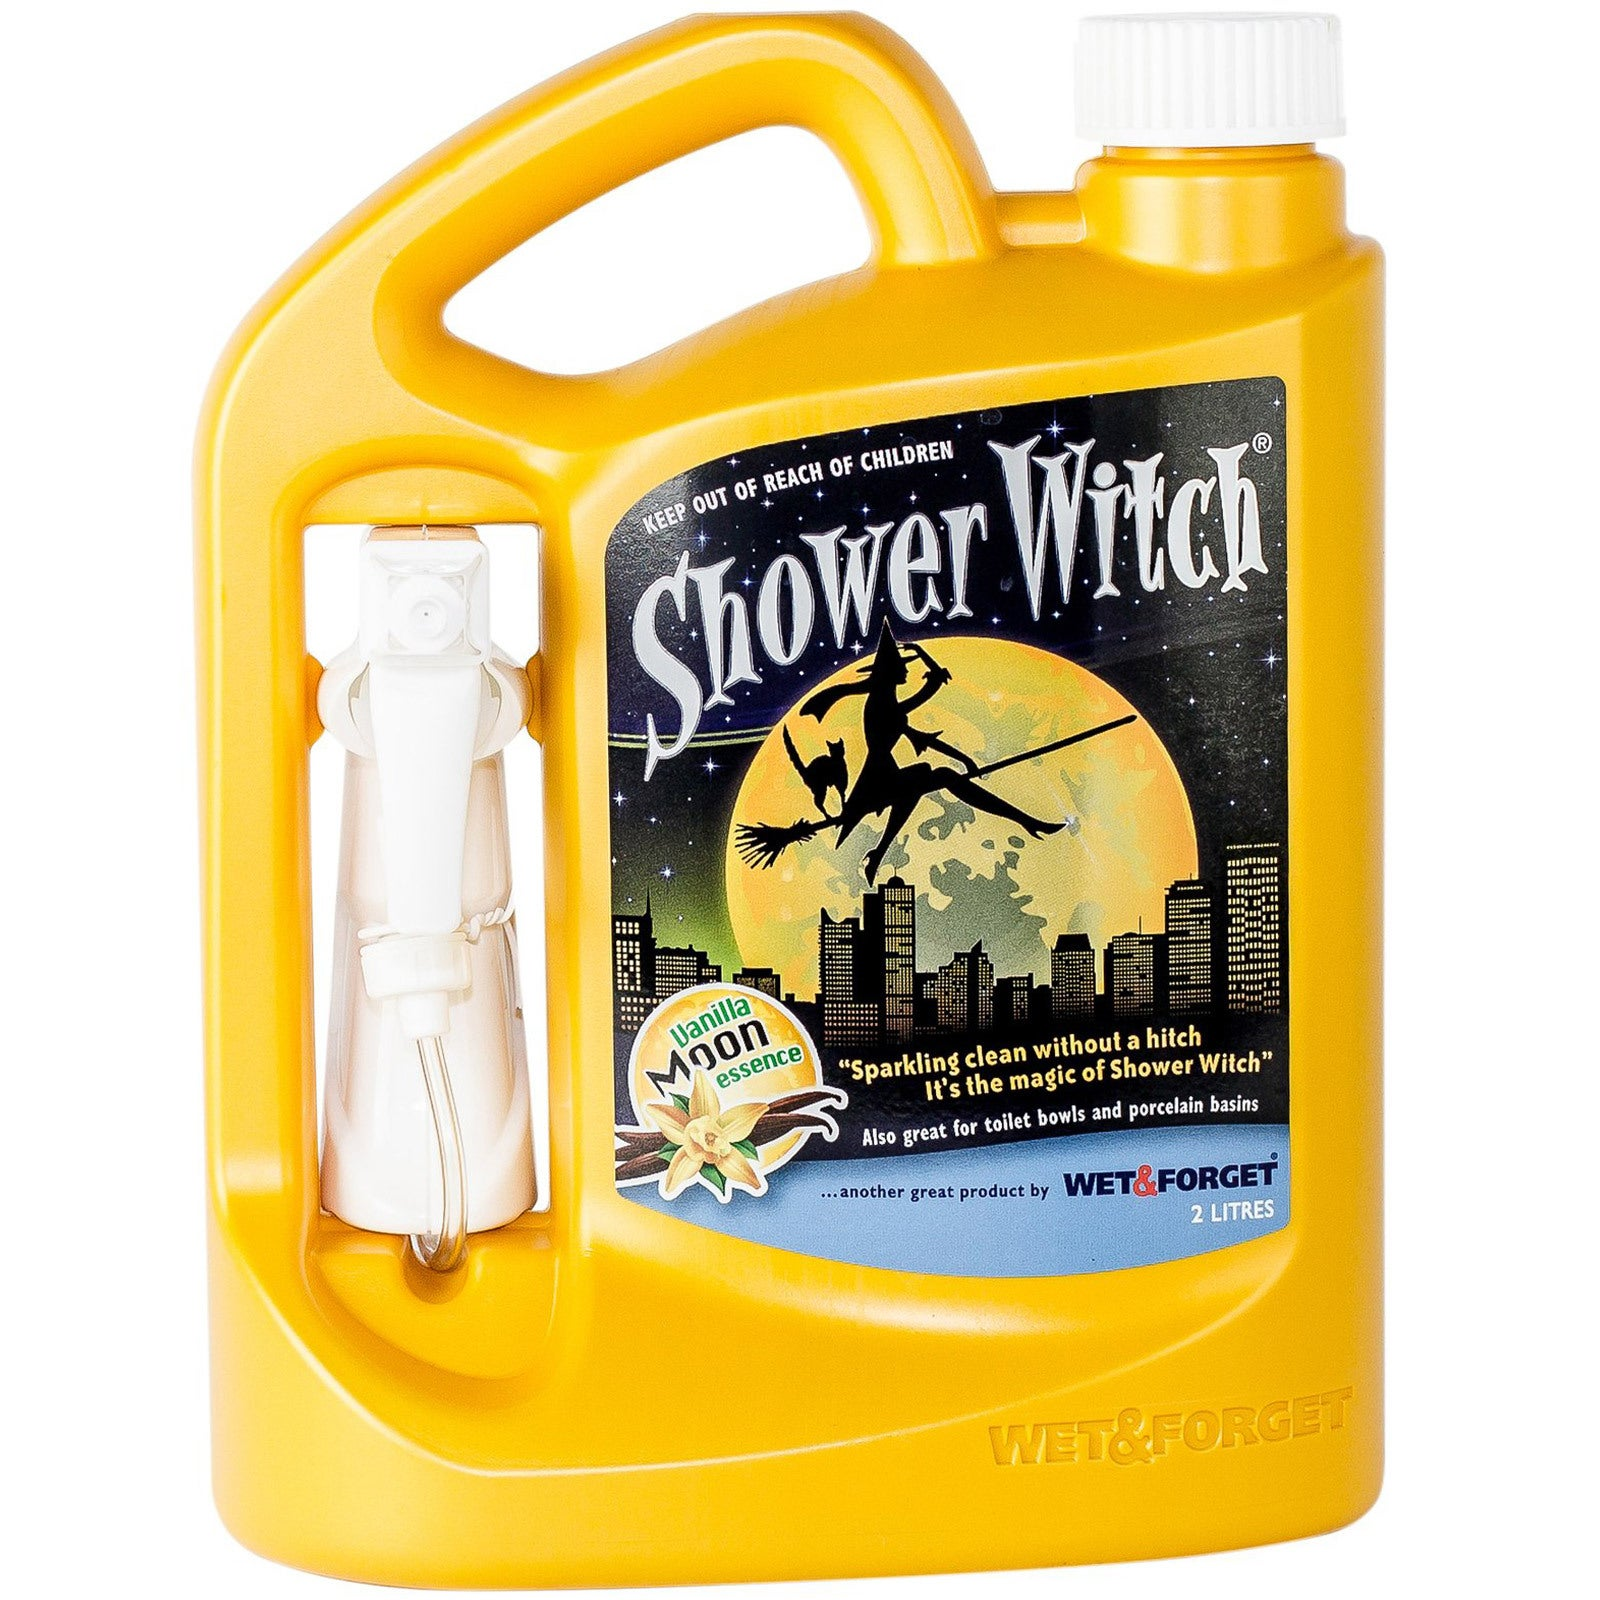 Wet & Forget 2L Shower Witch Bathroom Cleaner